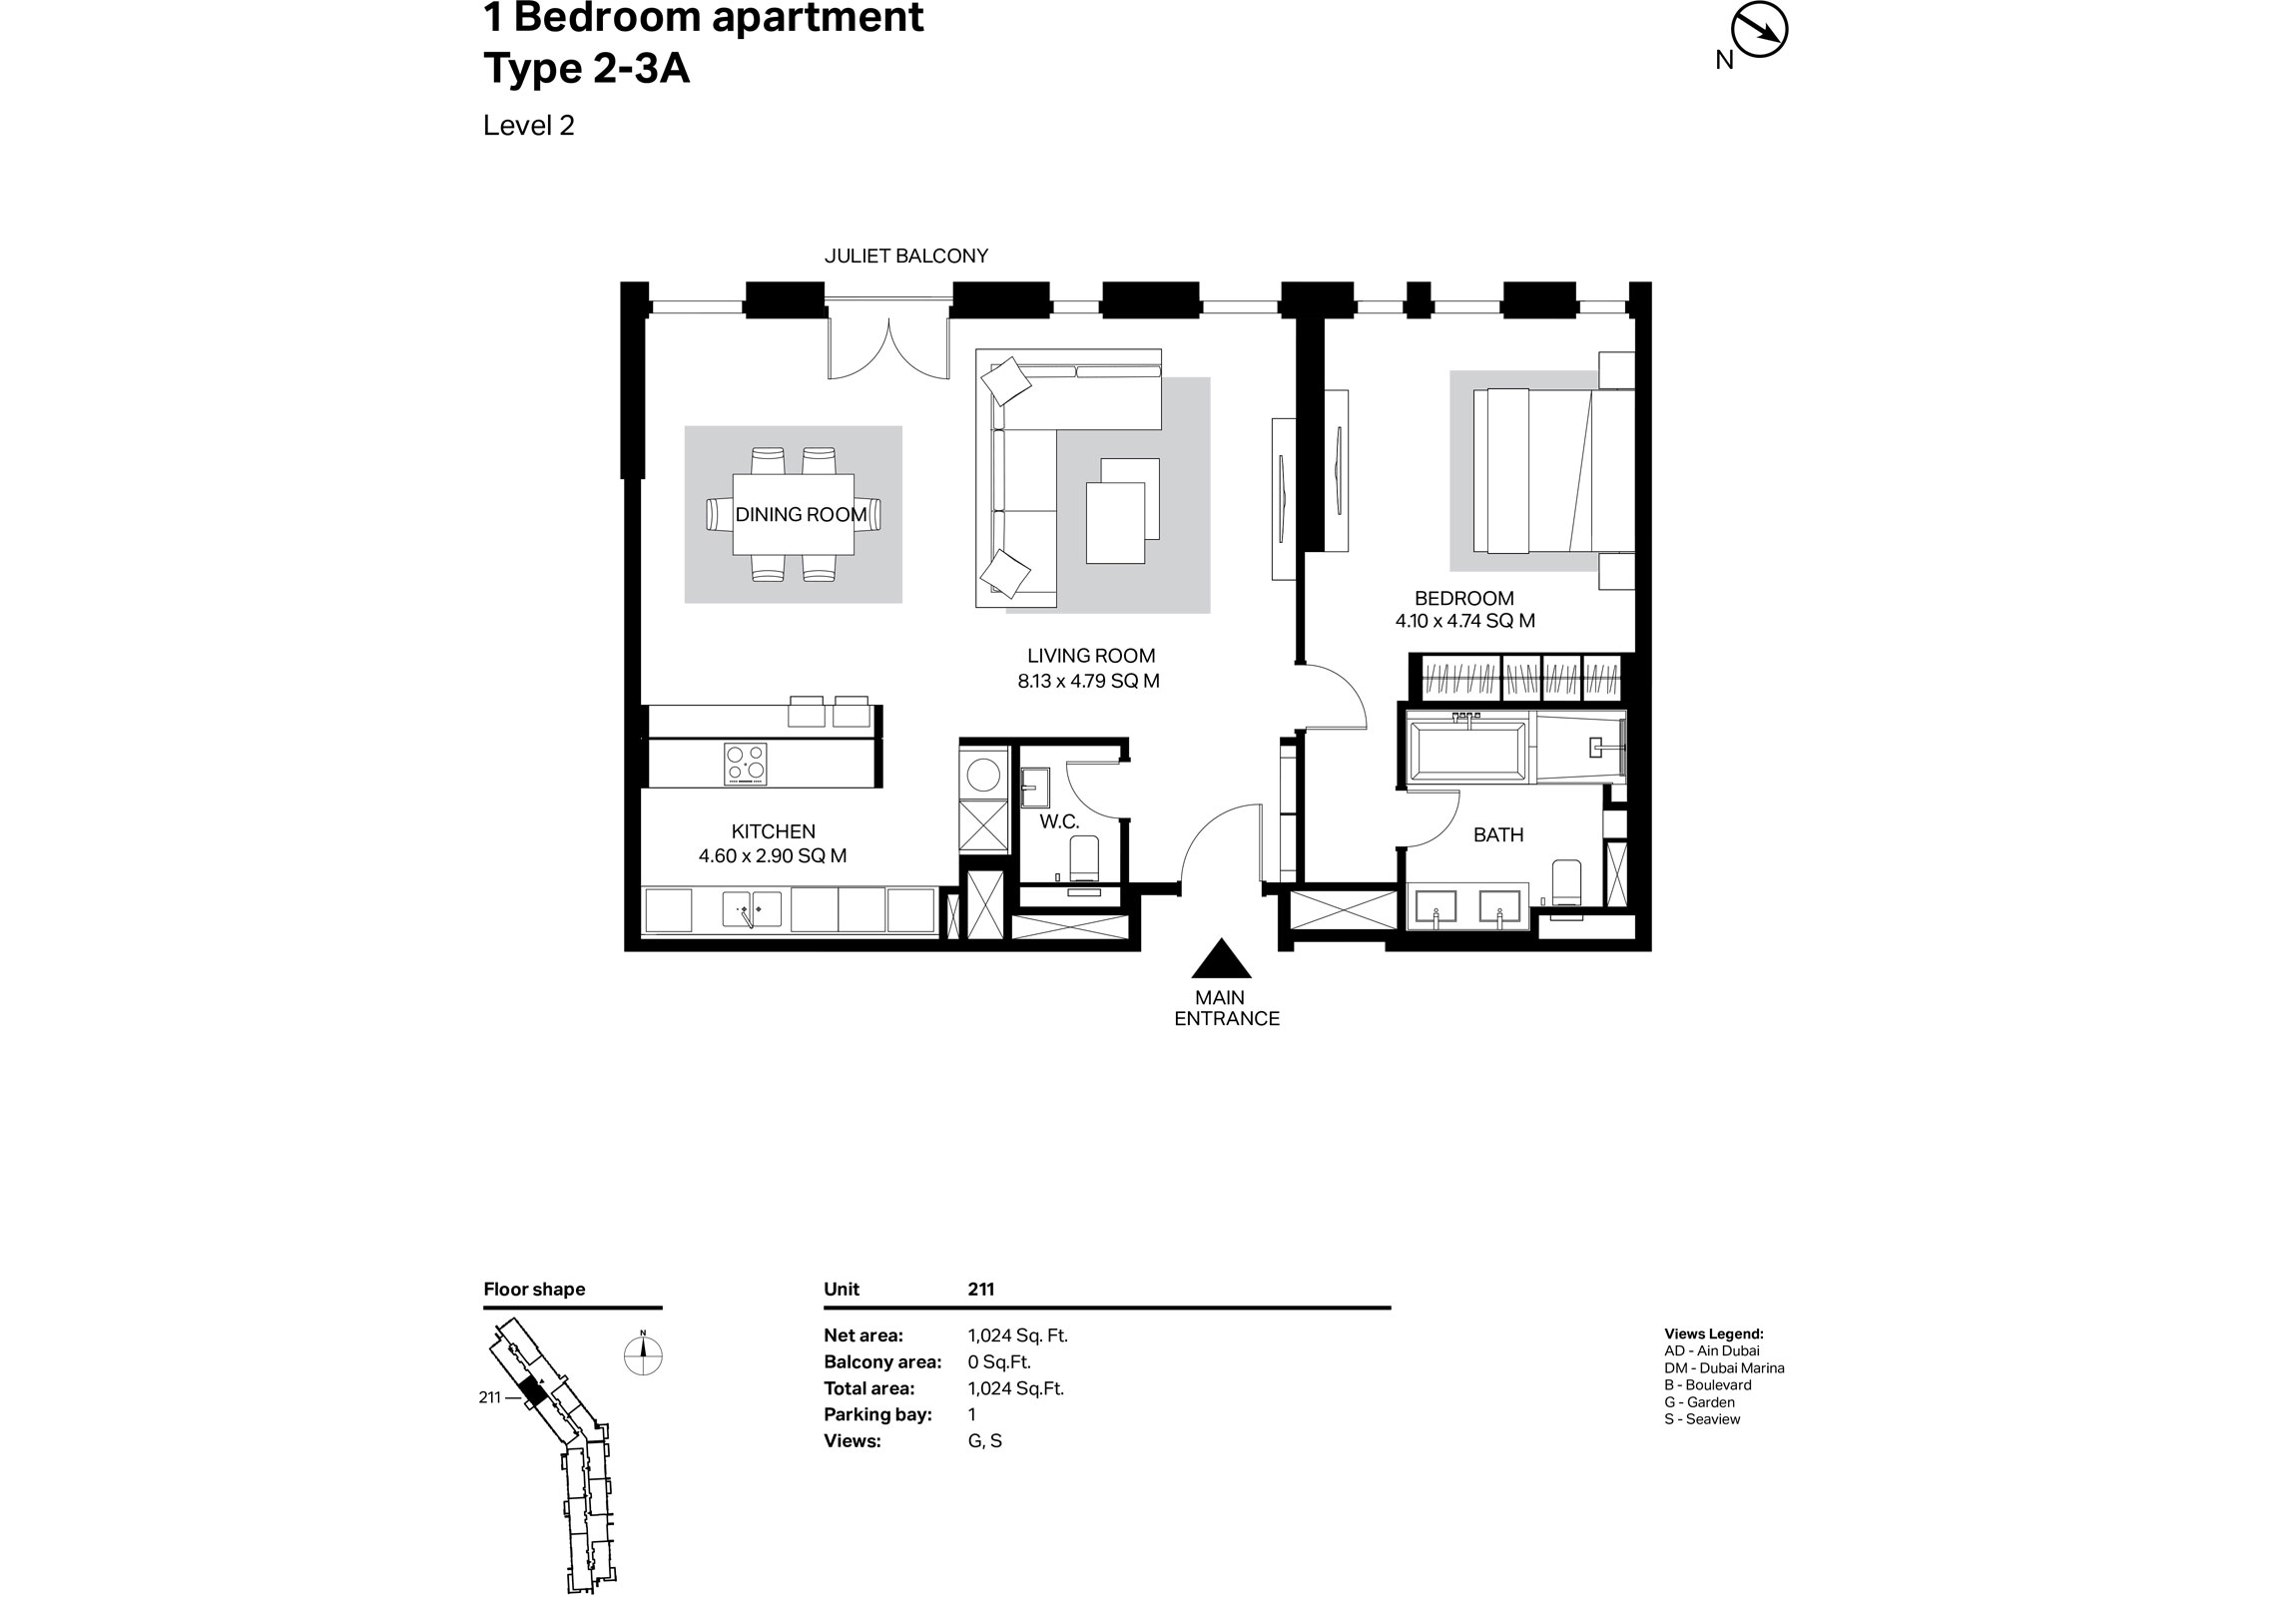 Building 2 - 1 Bedroom Type 2-3A Size 1024    sq. ft.